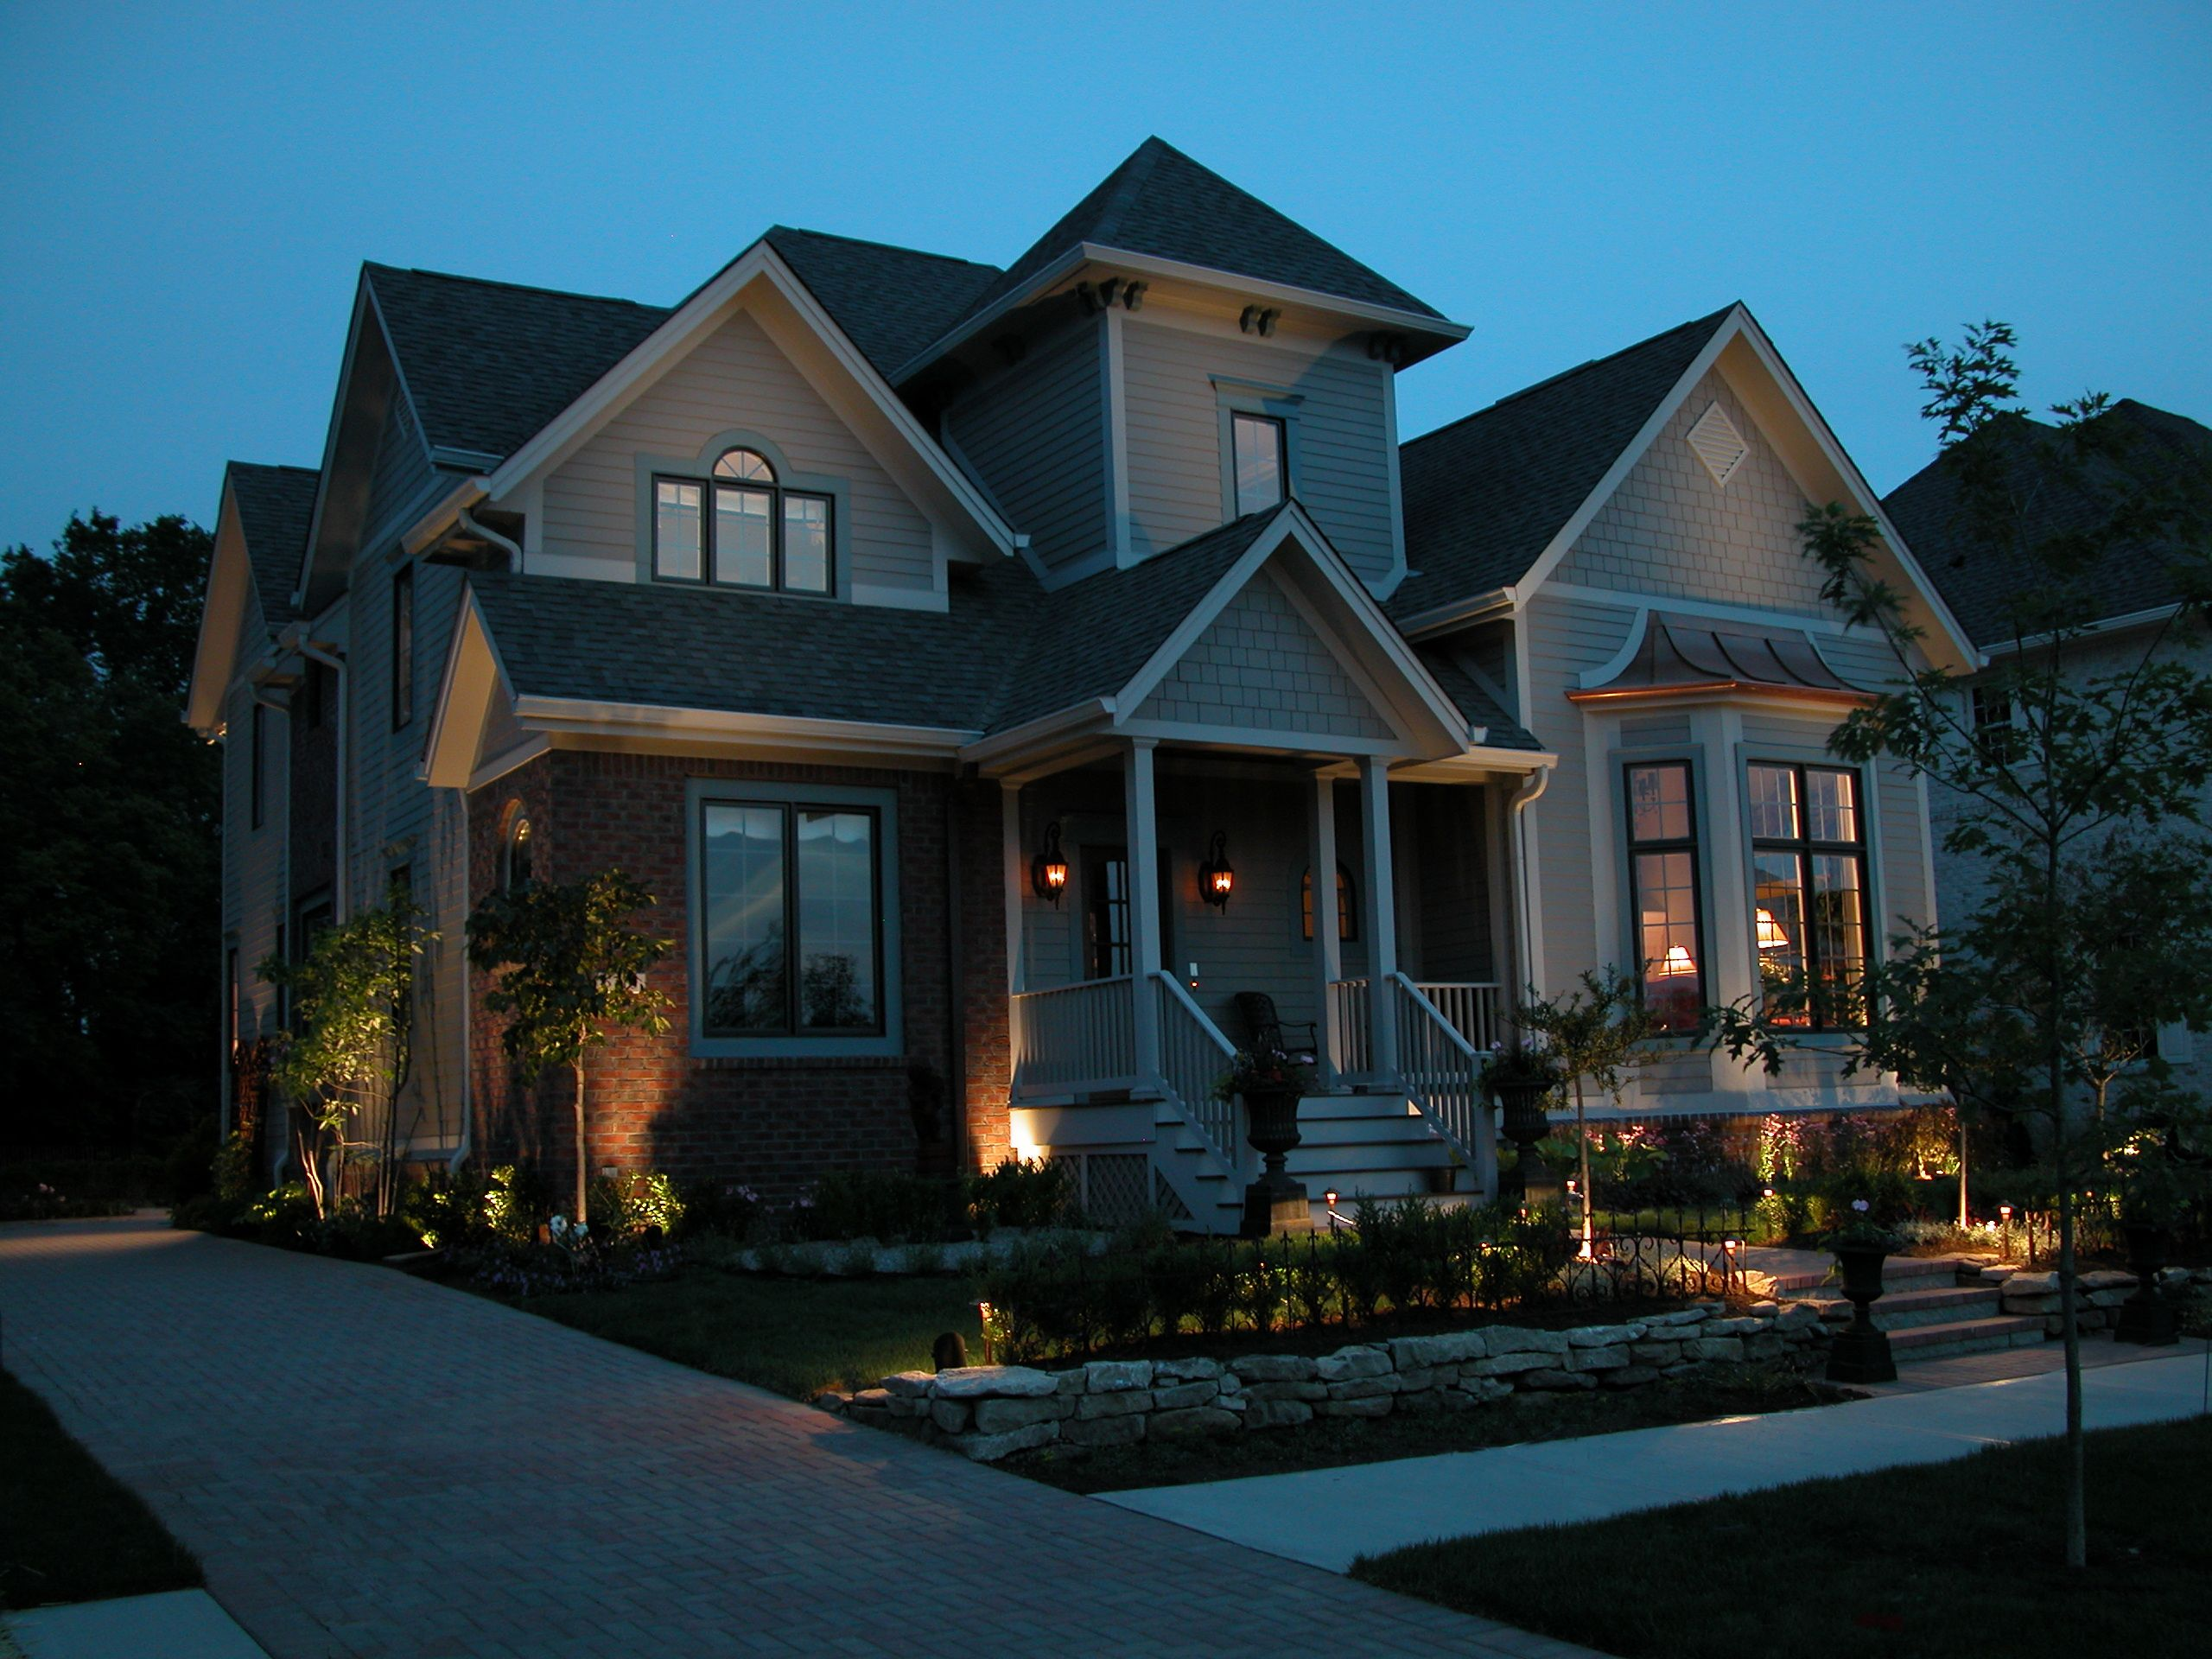 Illuminate The Landscaping Trees Along The Front Of Your House To Create An  Inviting Entry To